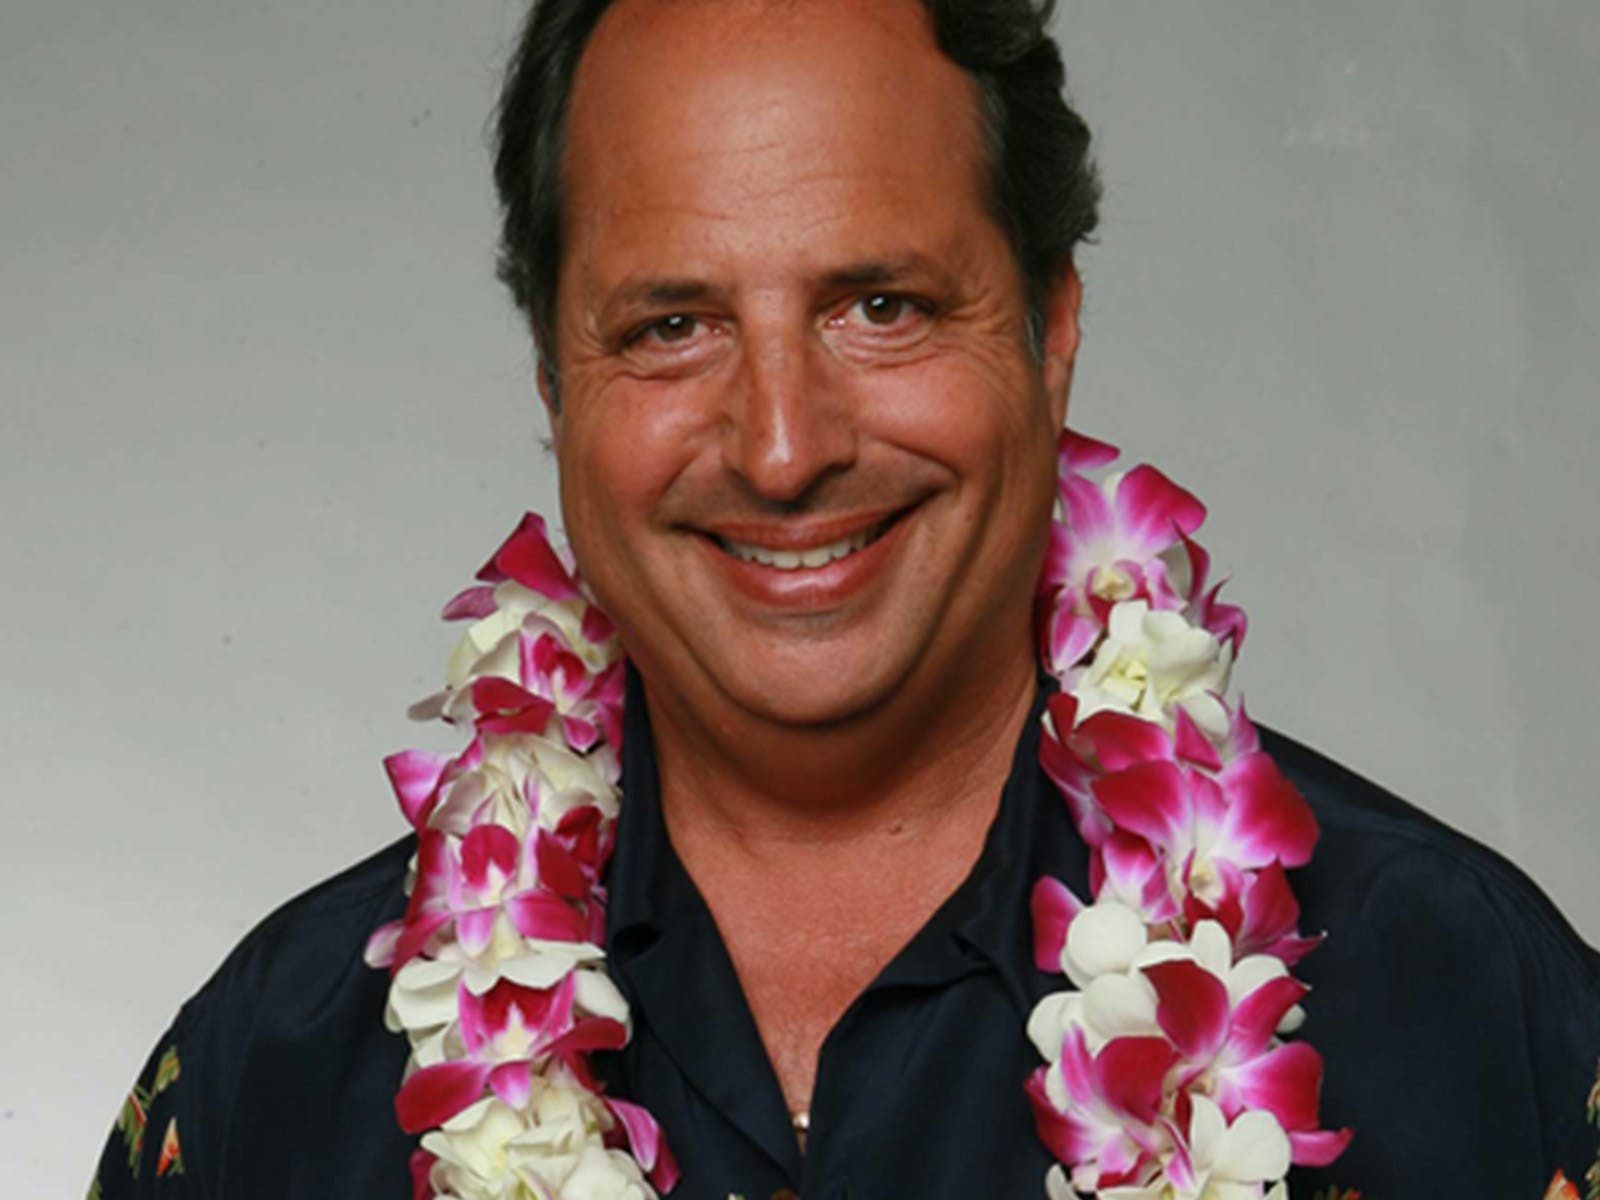 Jon Lovitz at Arlington Drafthouse Tickets | Washington DC